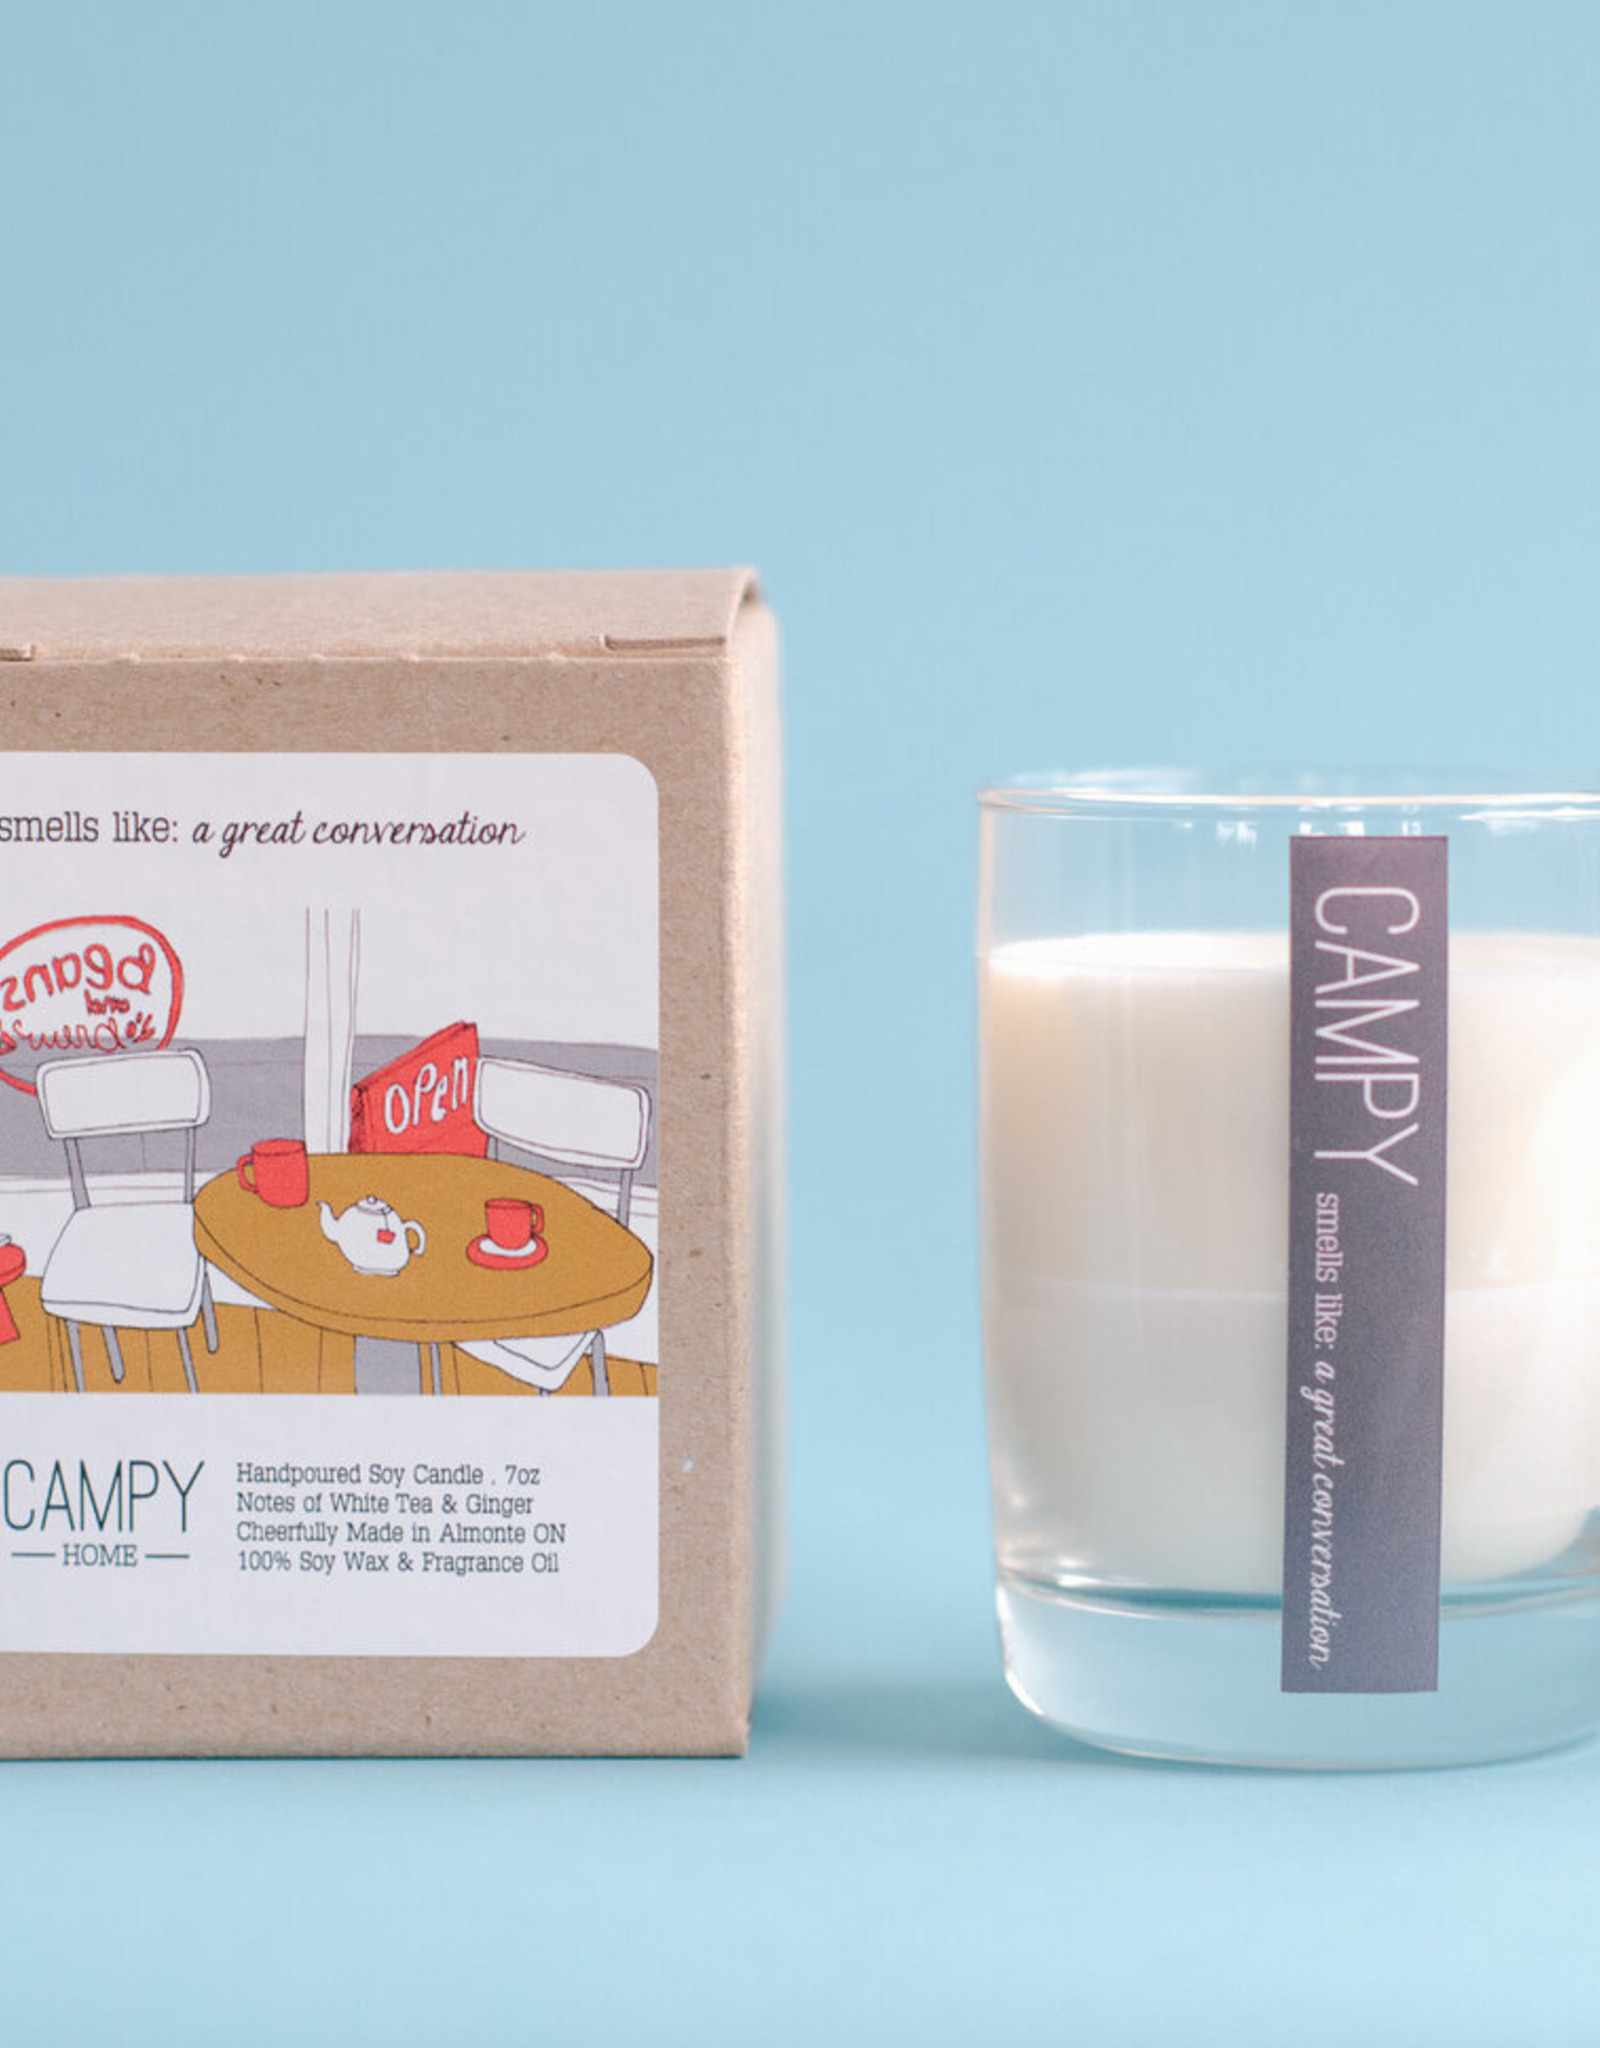 Campy Home Campy Home Great Conversation Candle